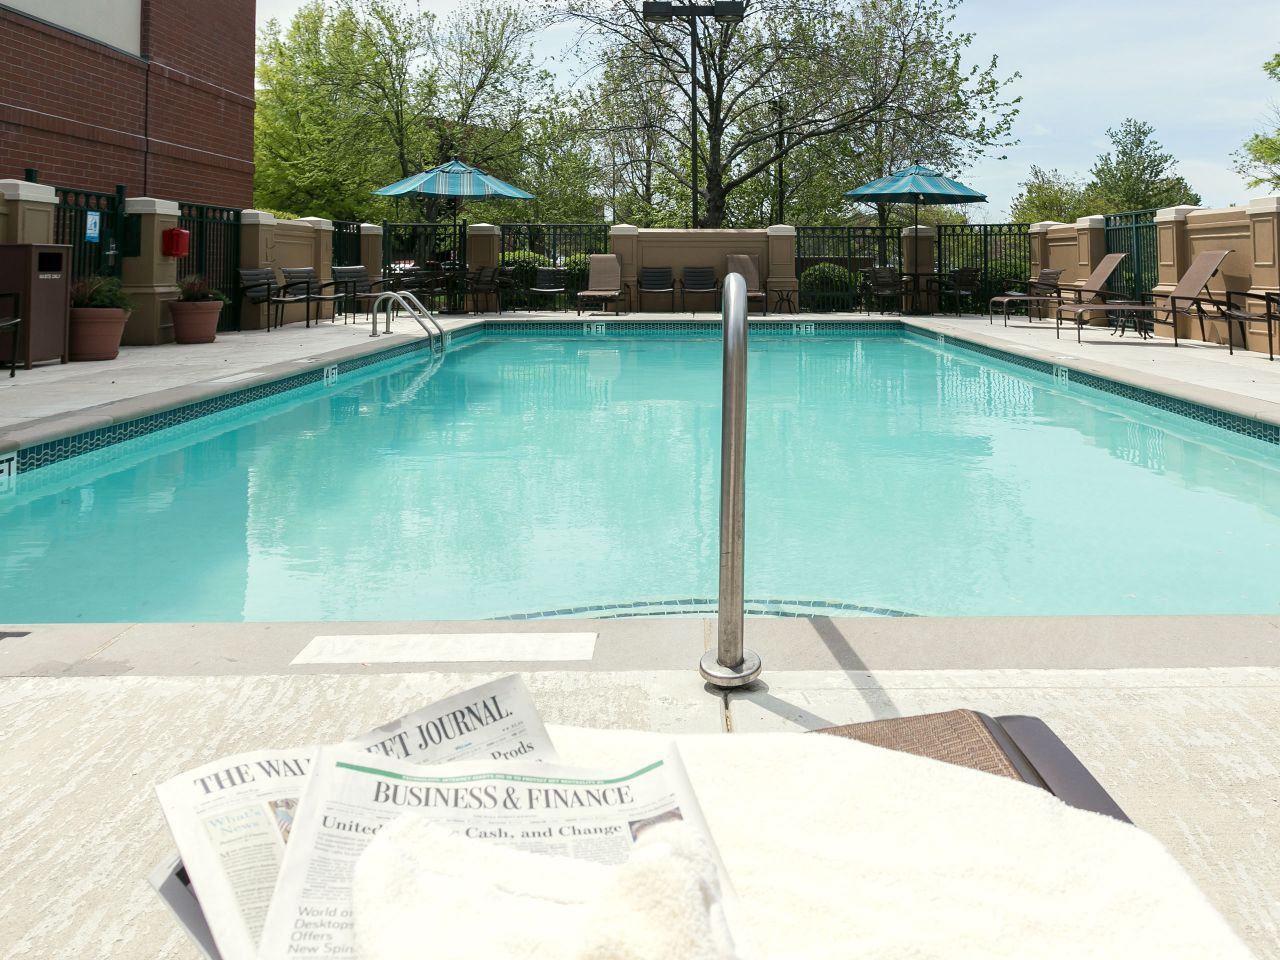 Pool Newspaper